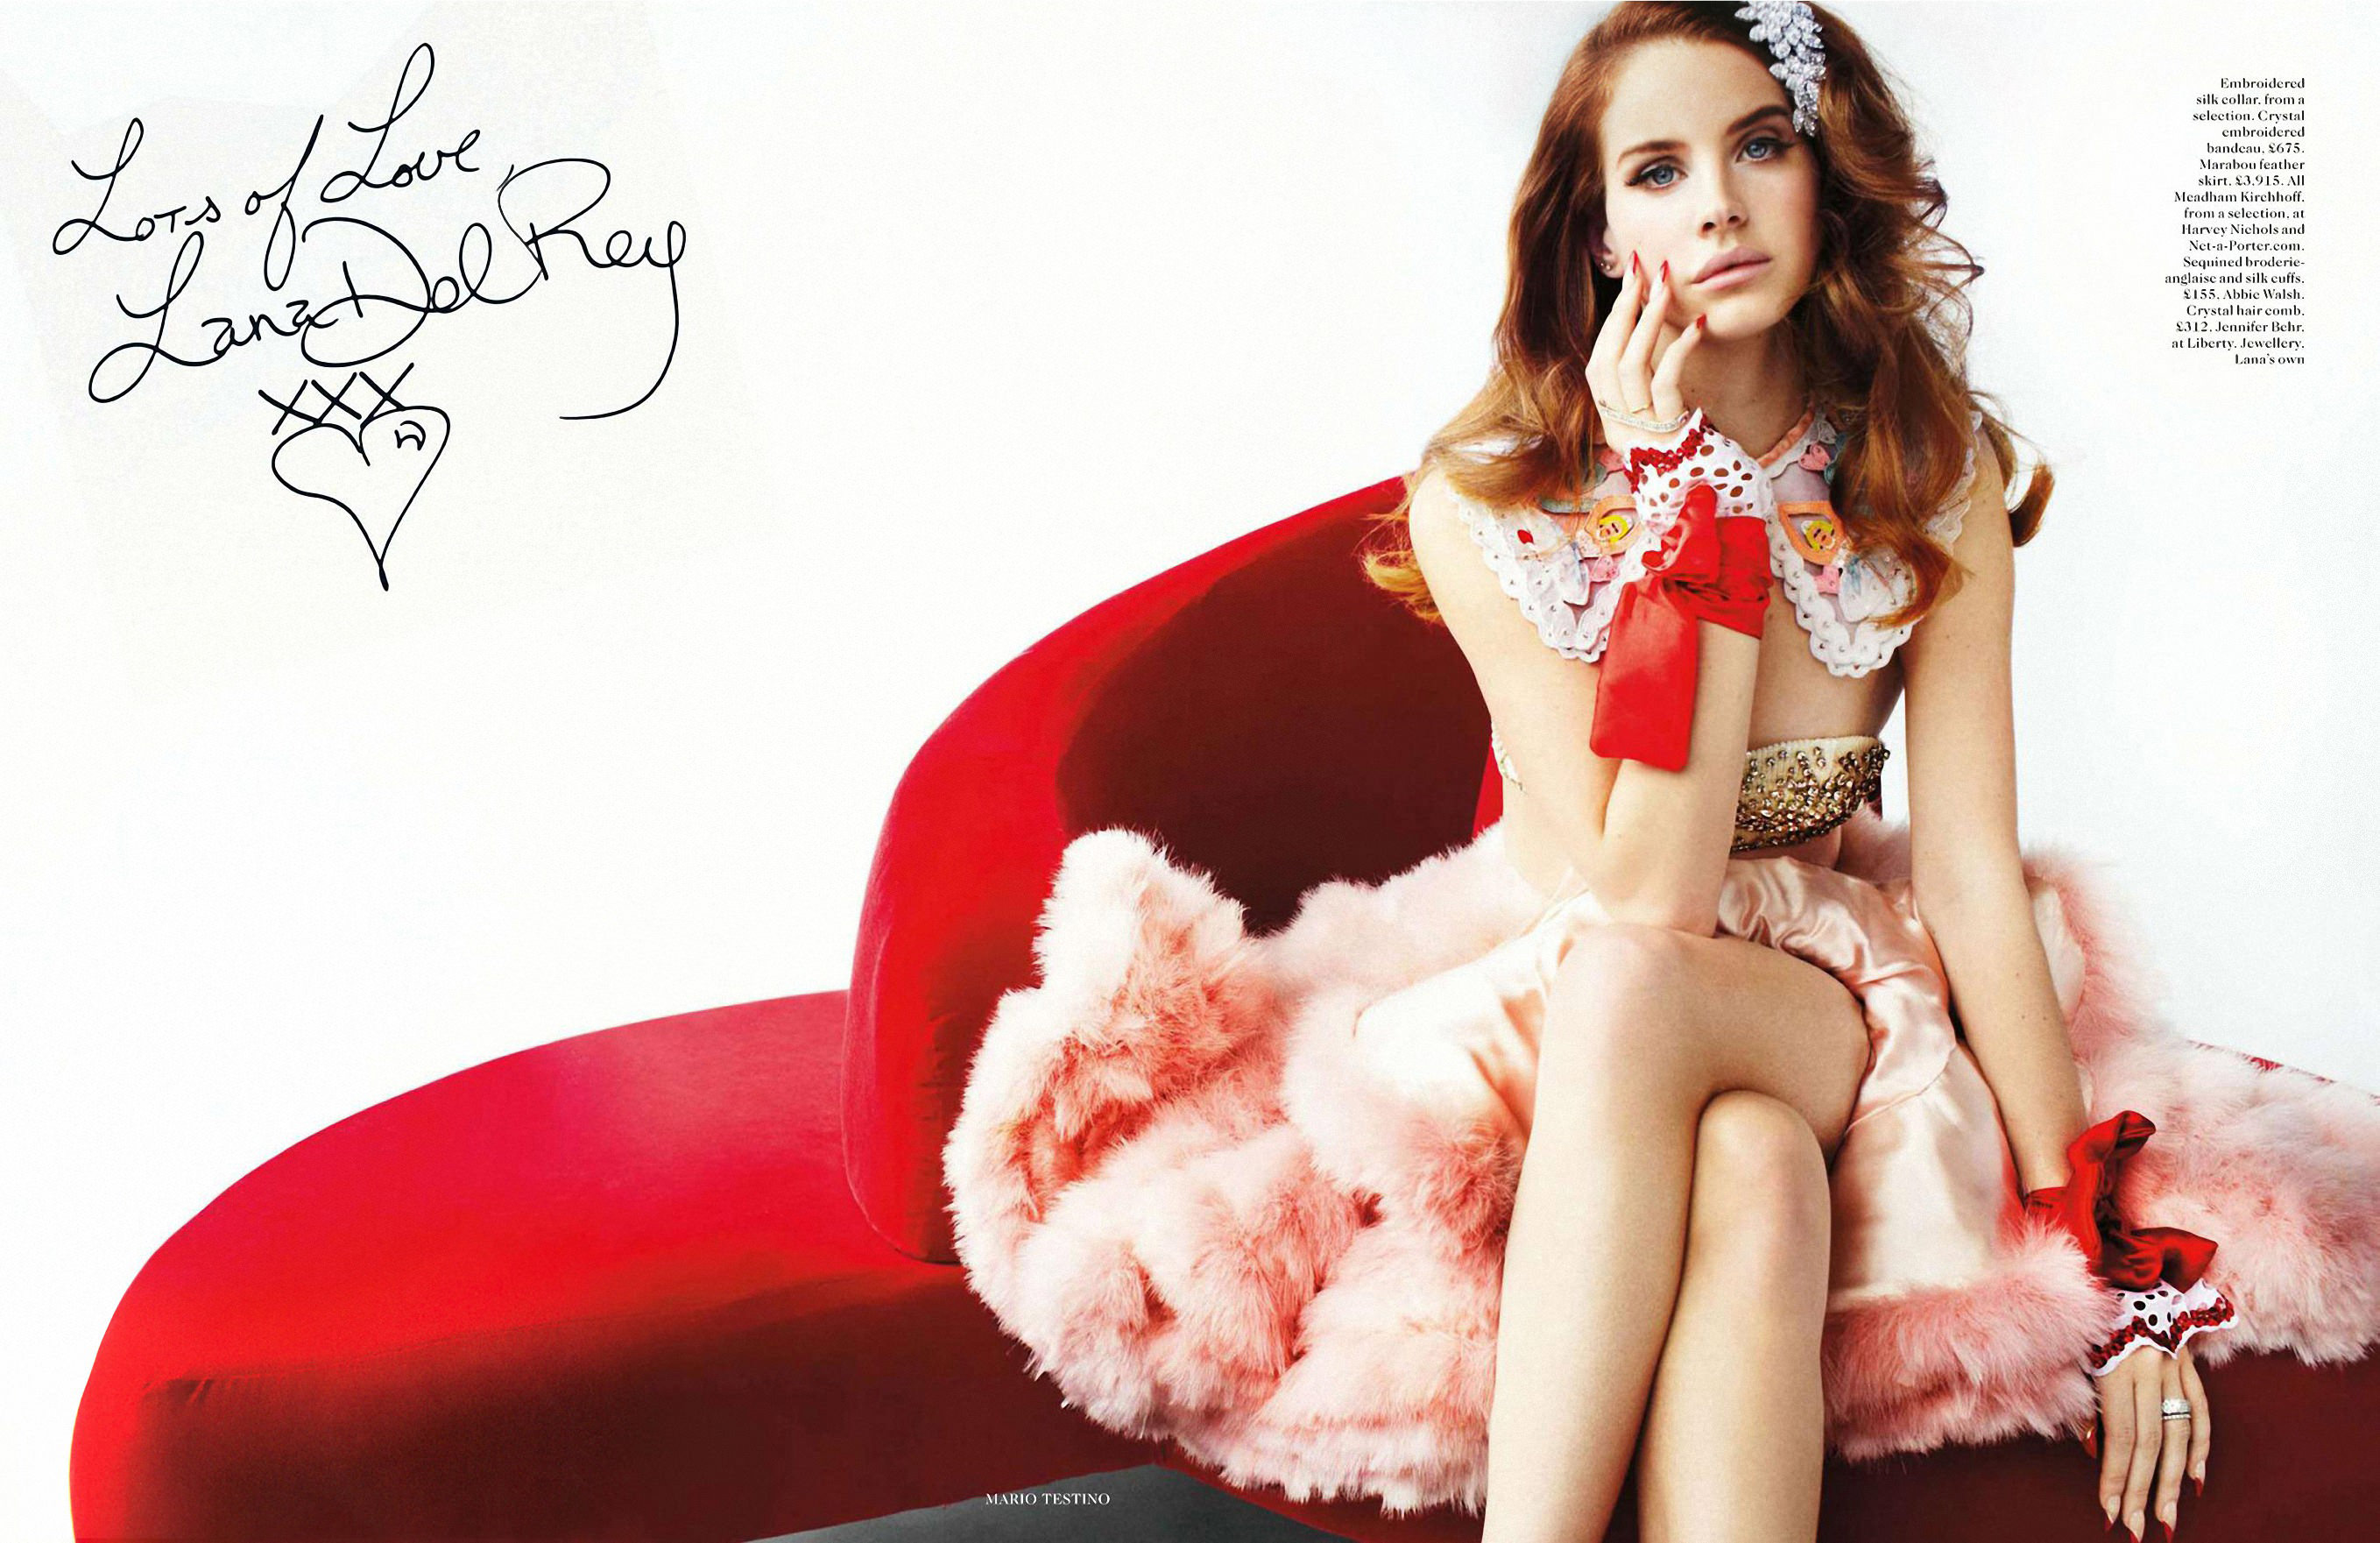 Lana Del Rey by Mario Testino for Vogue UK, March 2012 – The Video Star